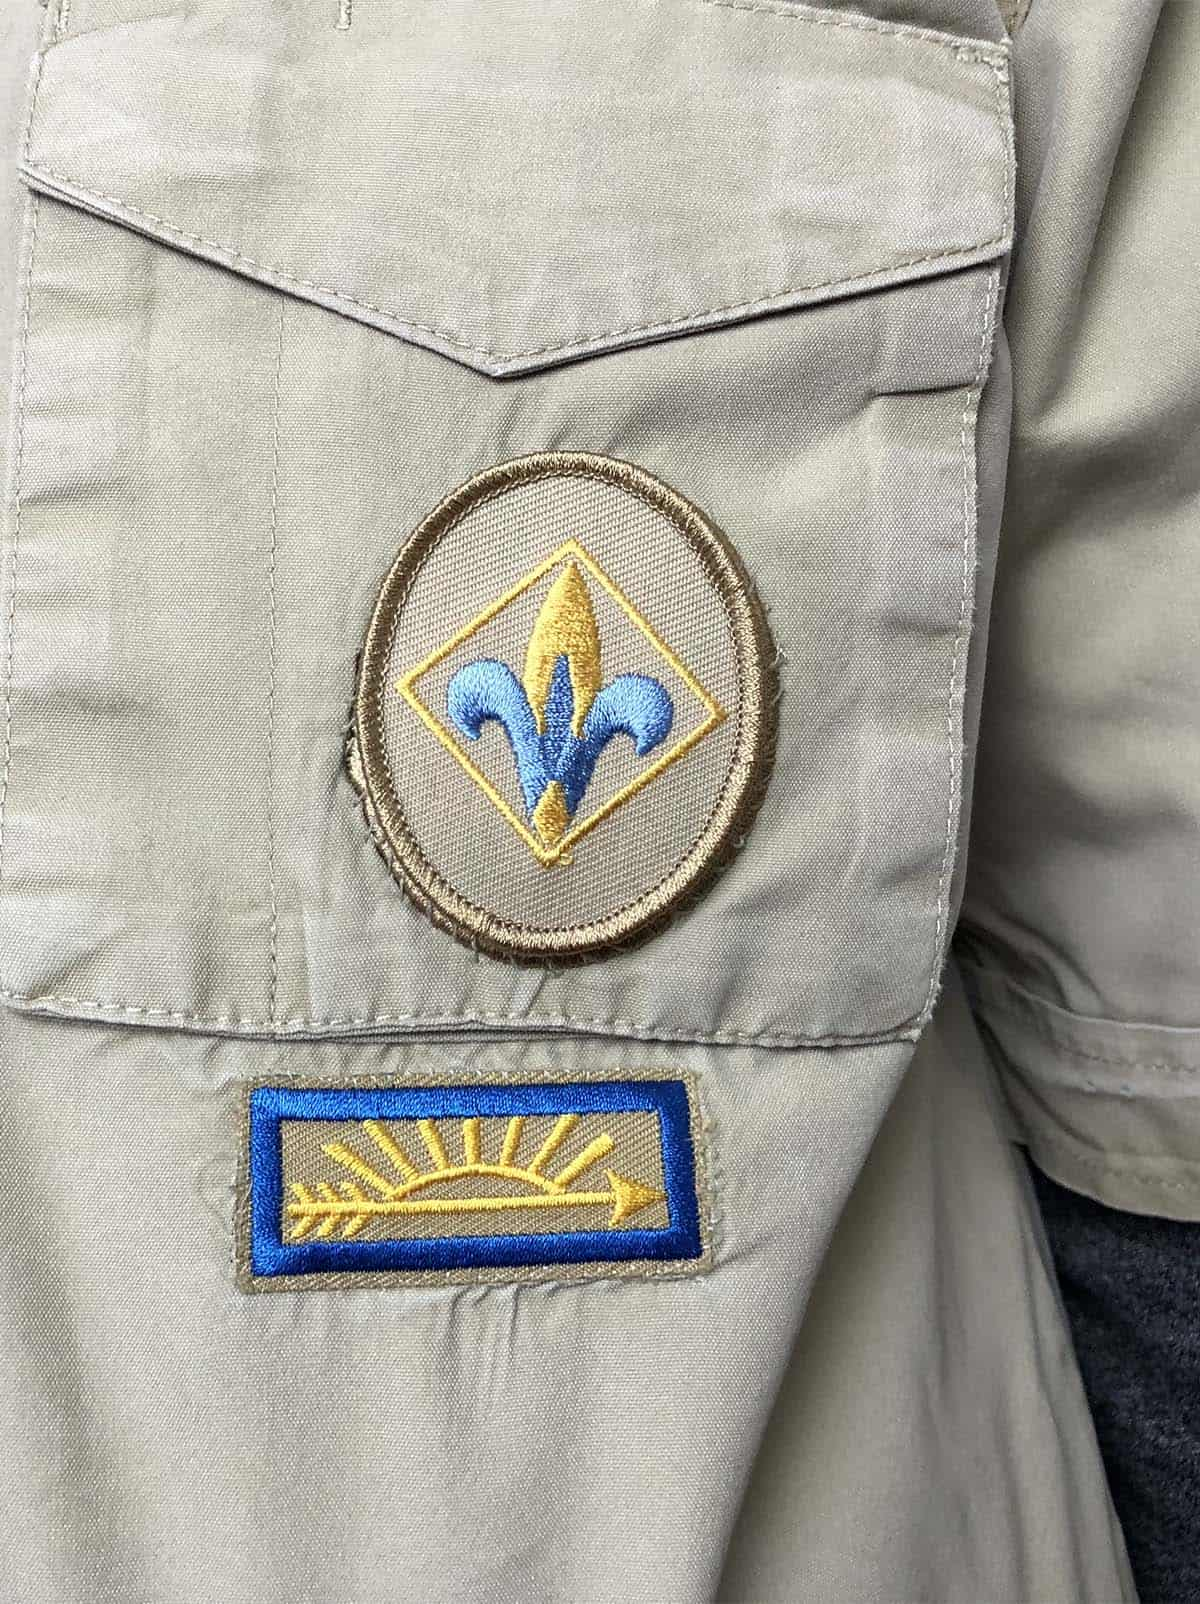 Ultimate Cub Scout Patch Amp Badge Placement Guide